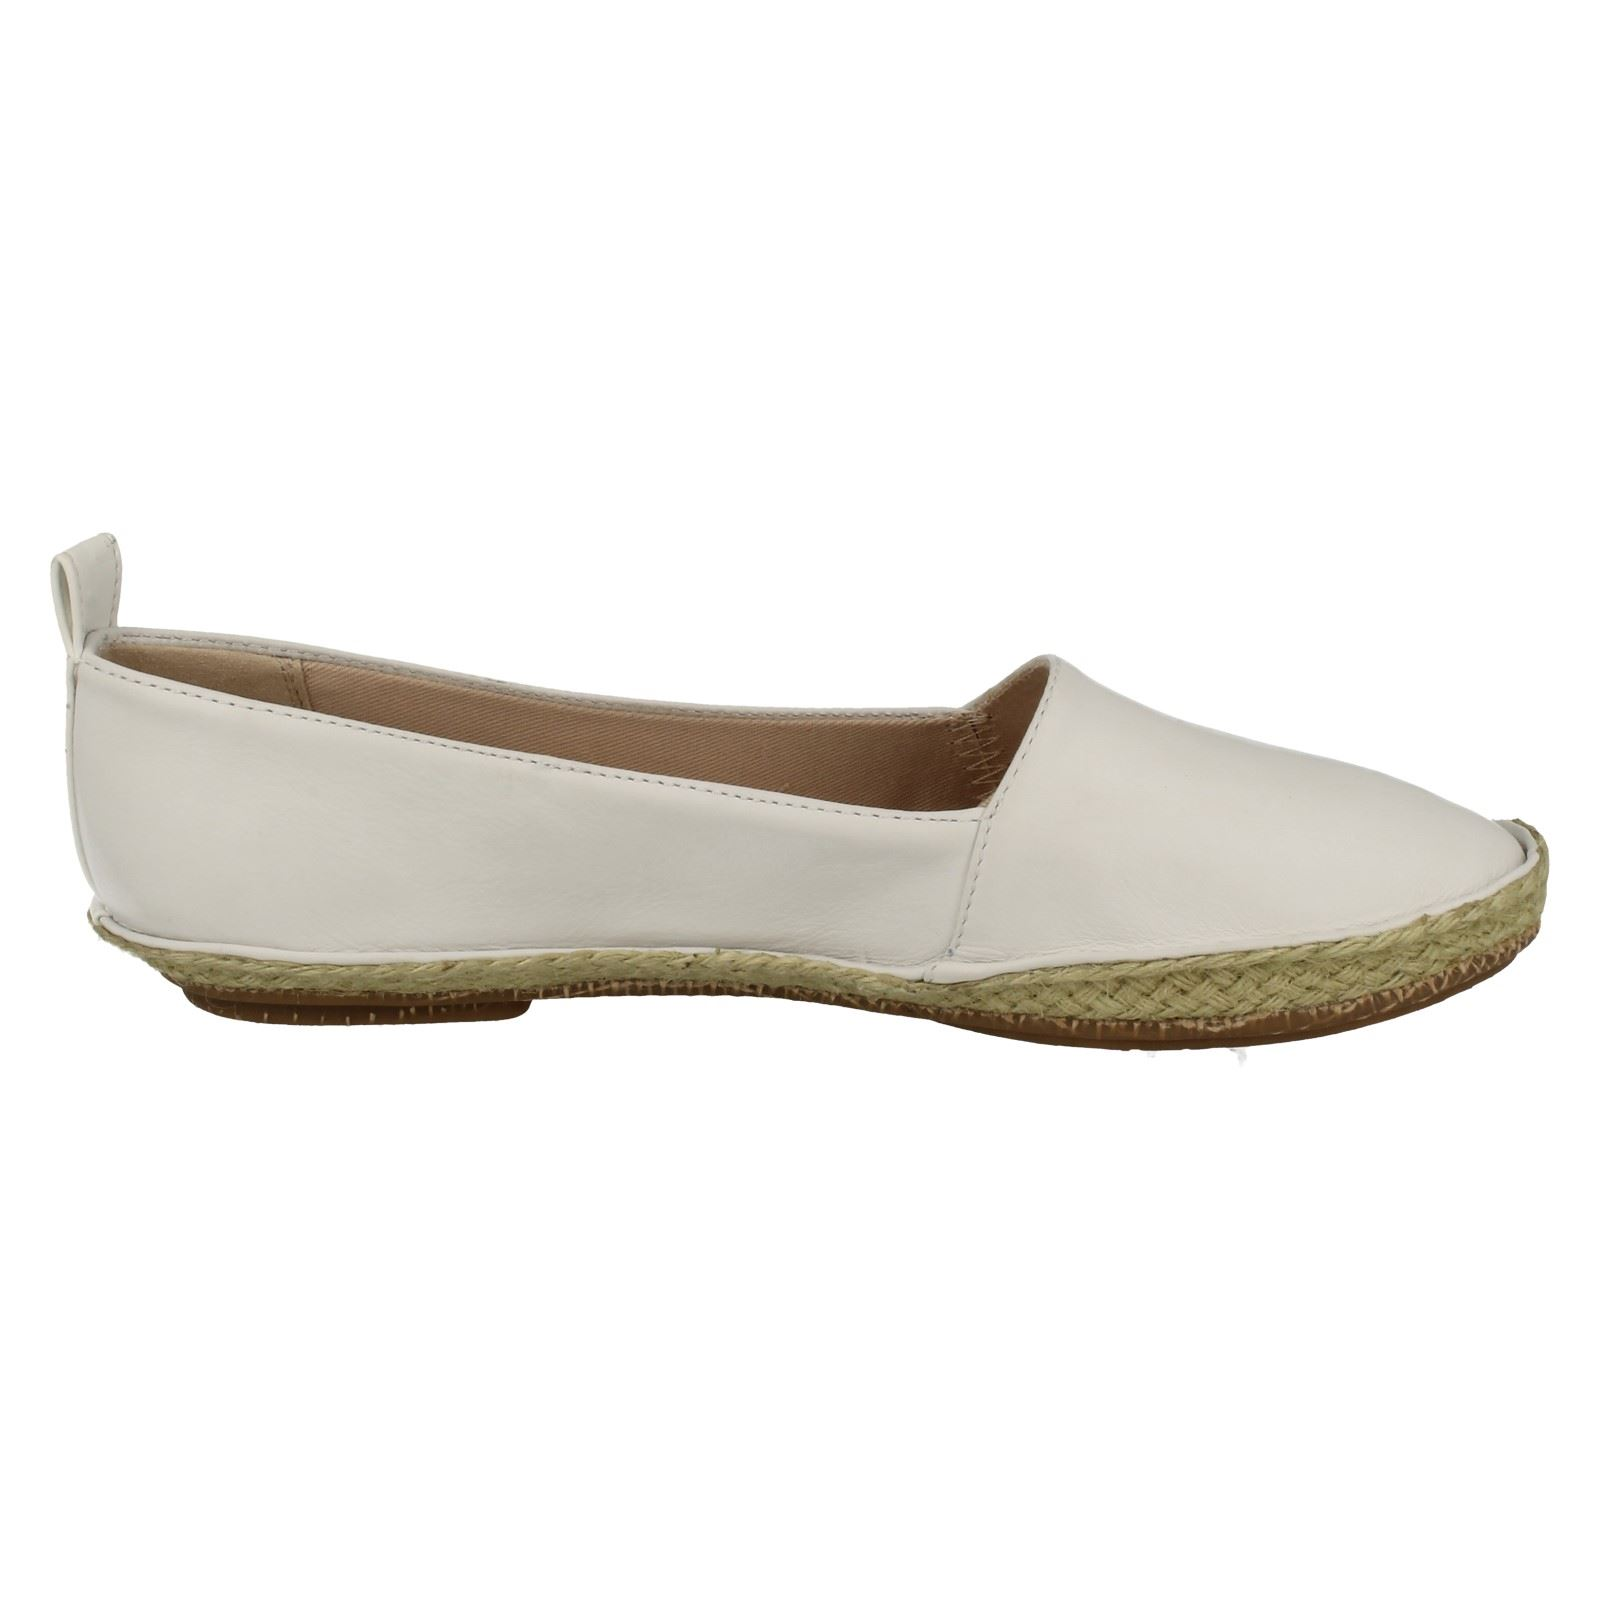 Ladies-Clarks-Casual-Flat-Slip-On-Shoes-039-